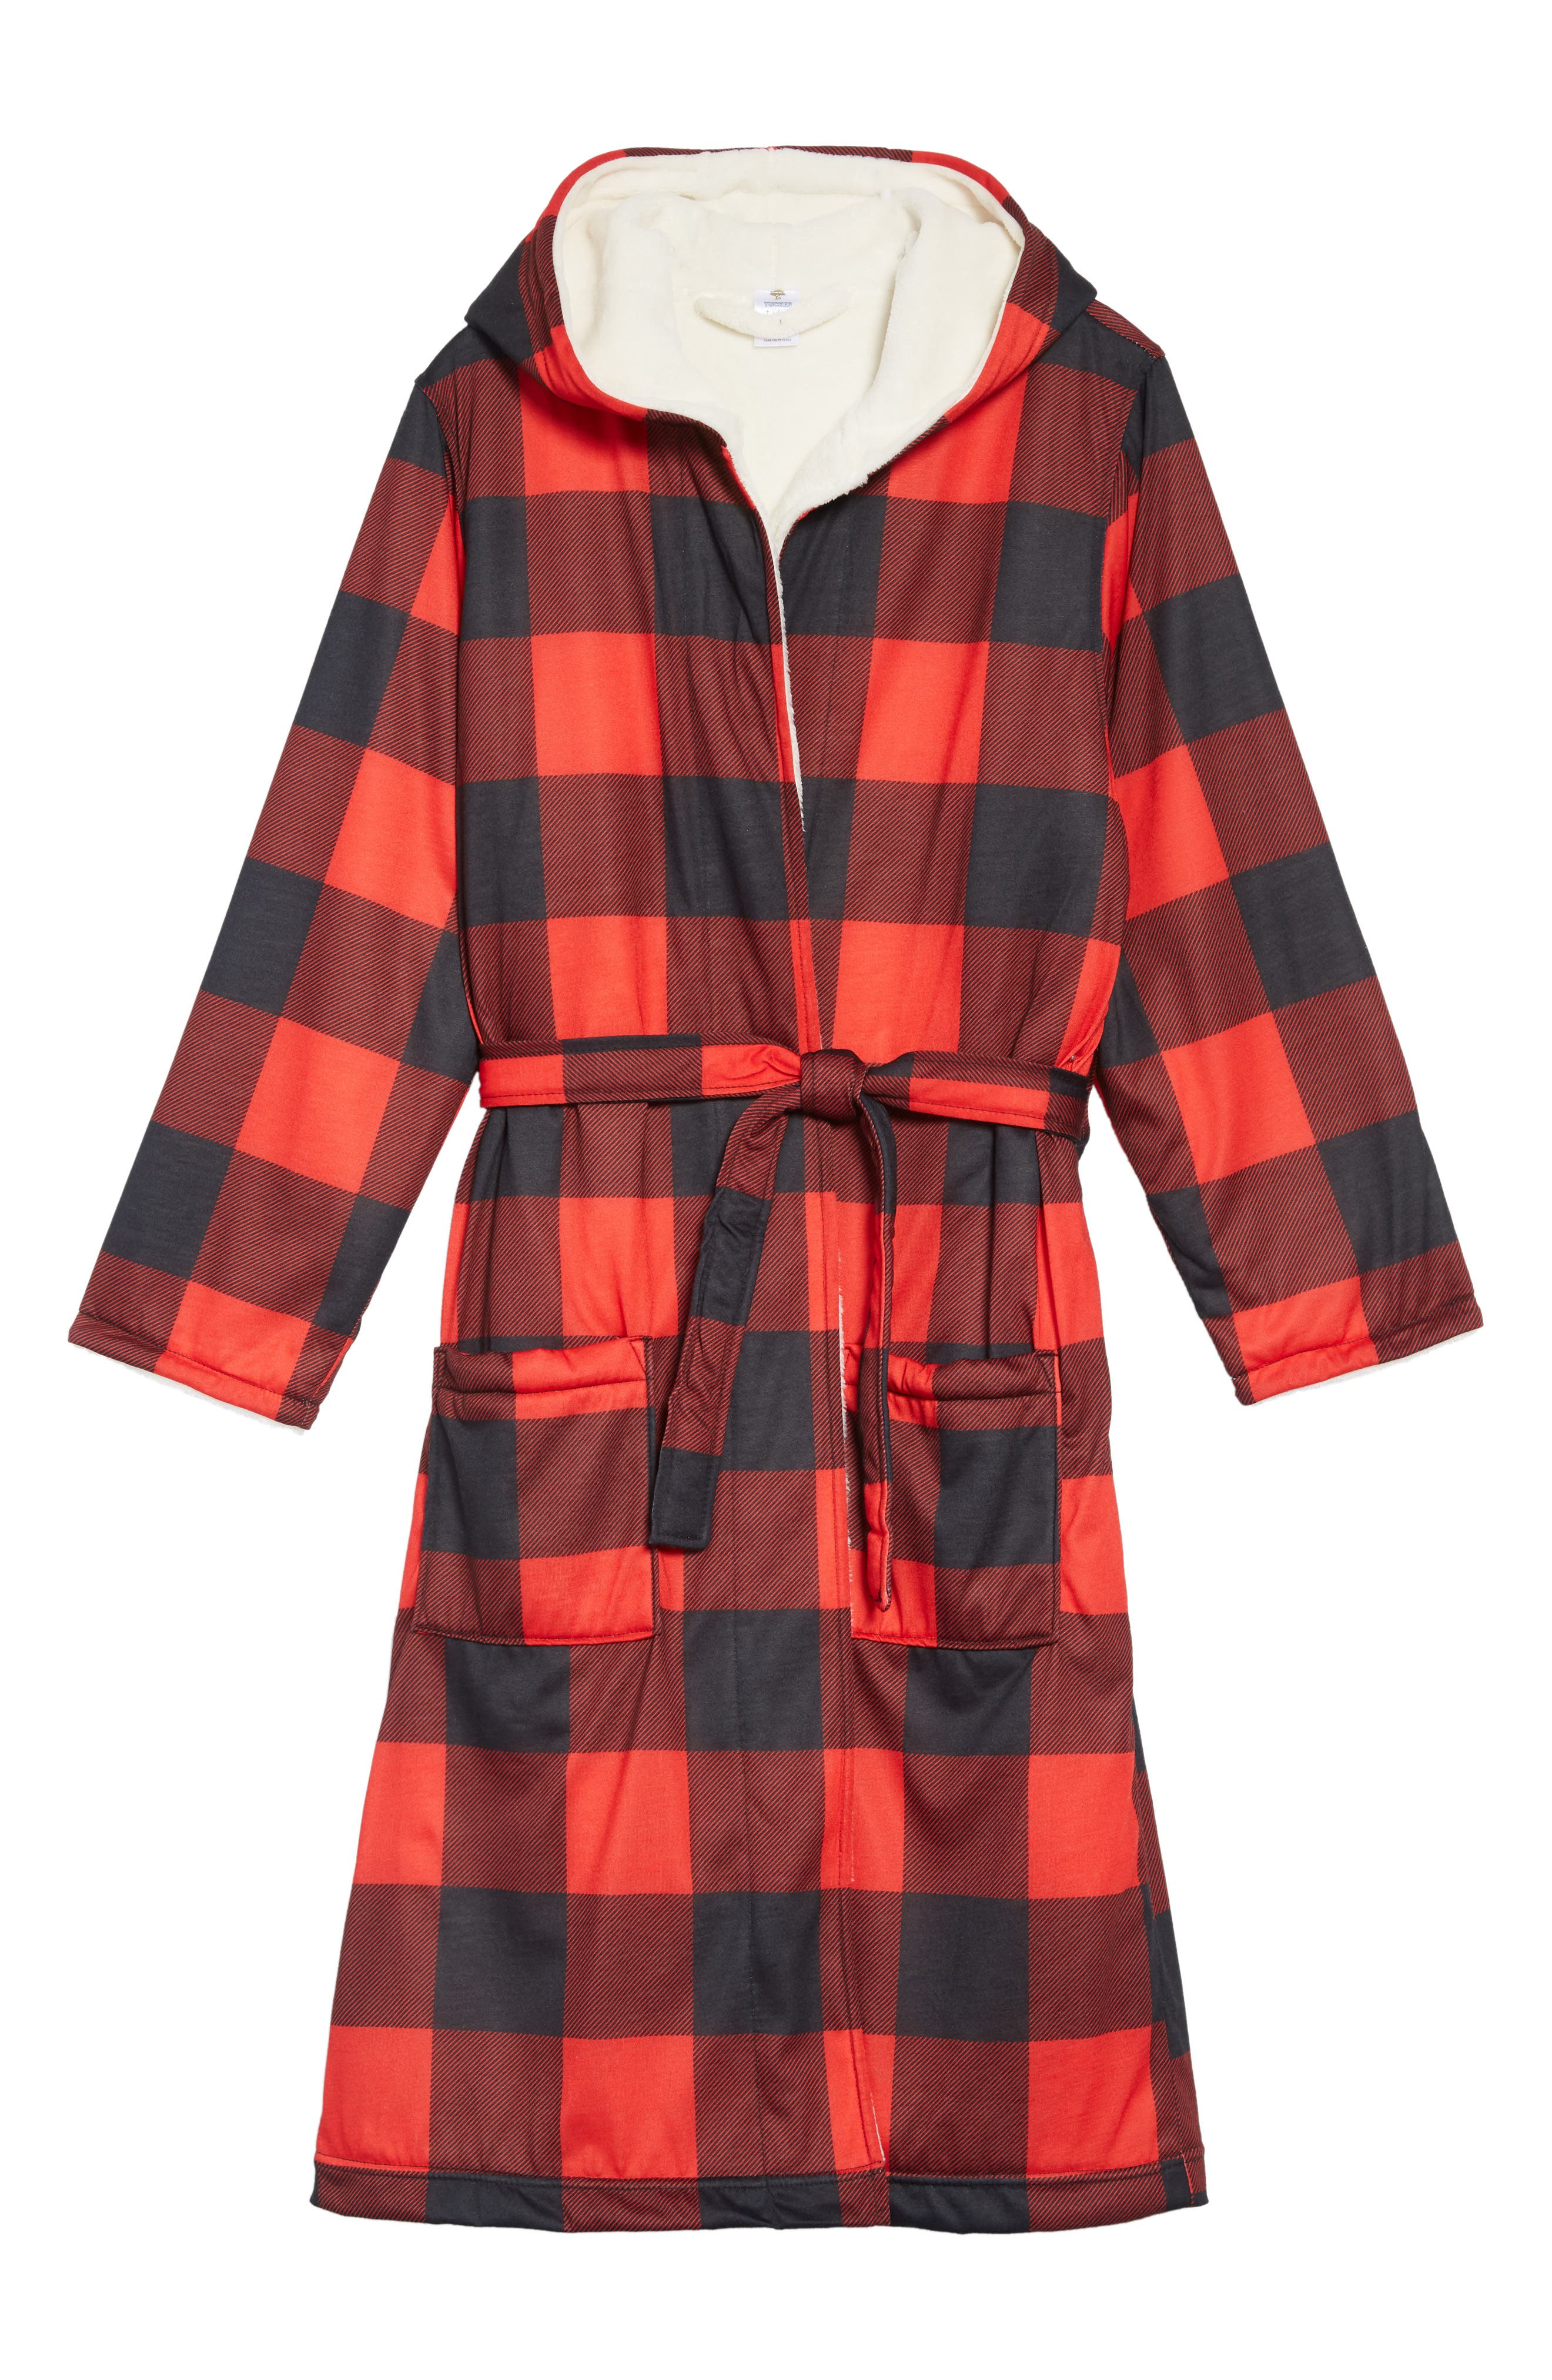 Fleece Lined Hooded Robe,                             Main thumbnail 1, color,                             RED BLOOM- BLACK CHECK